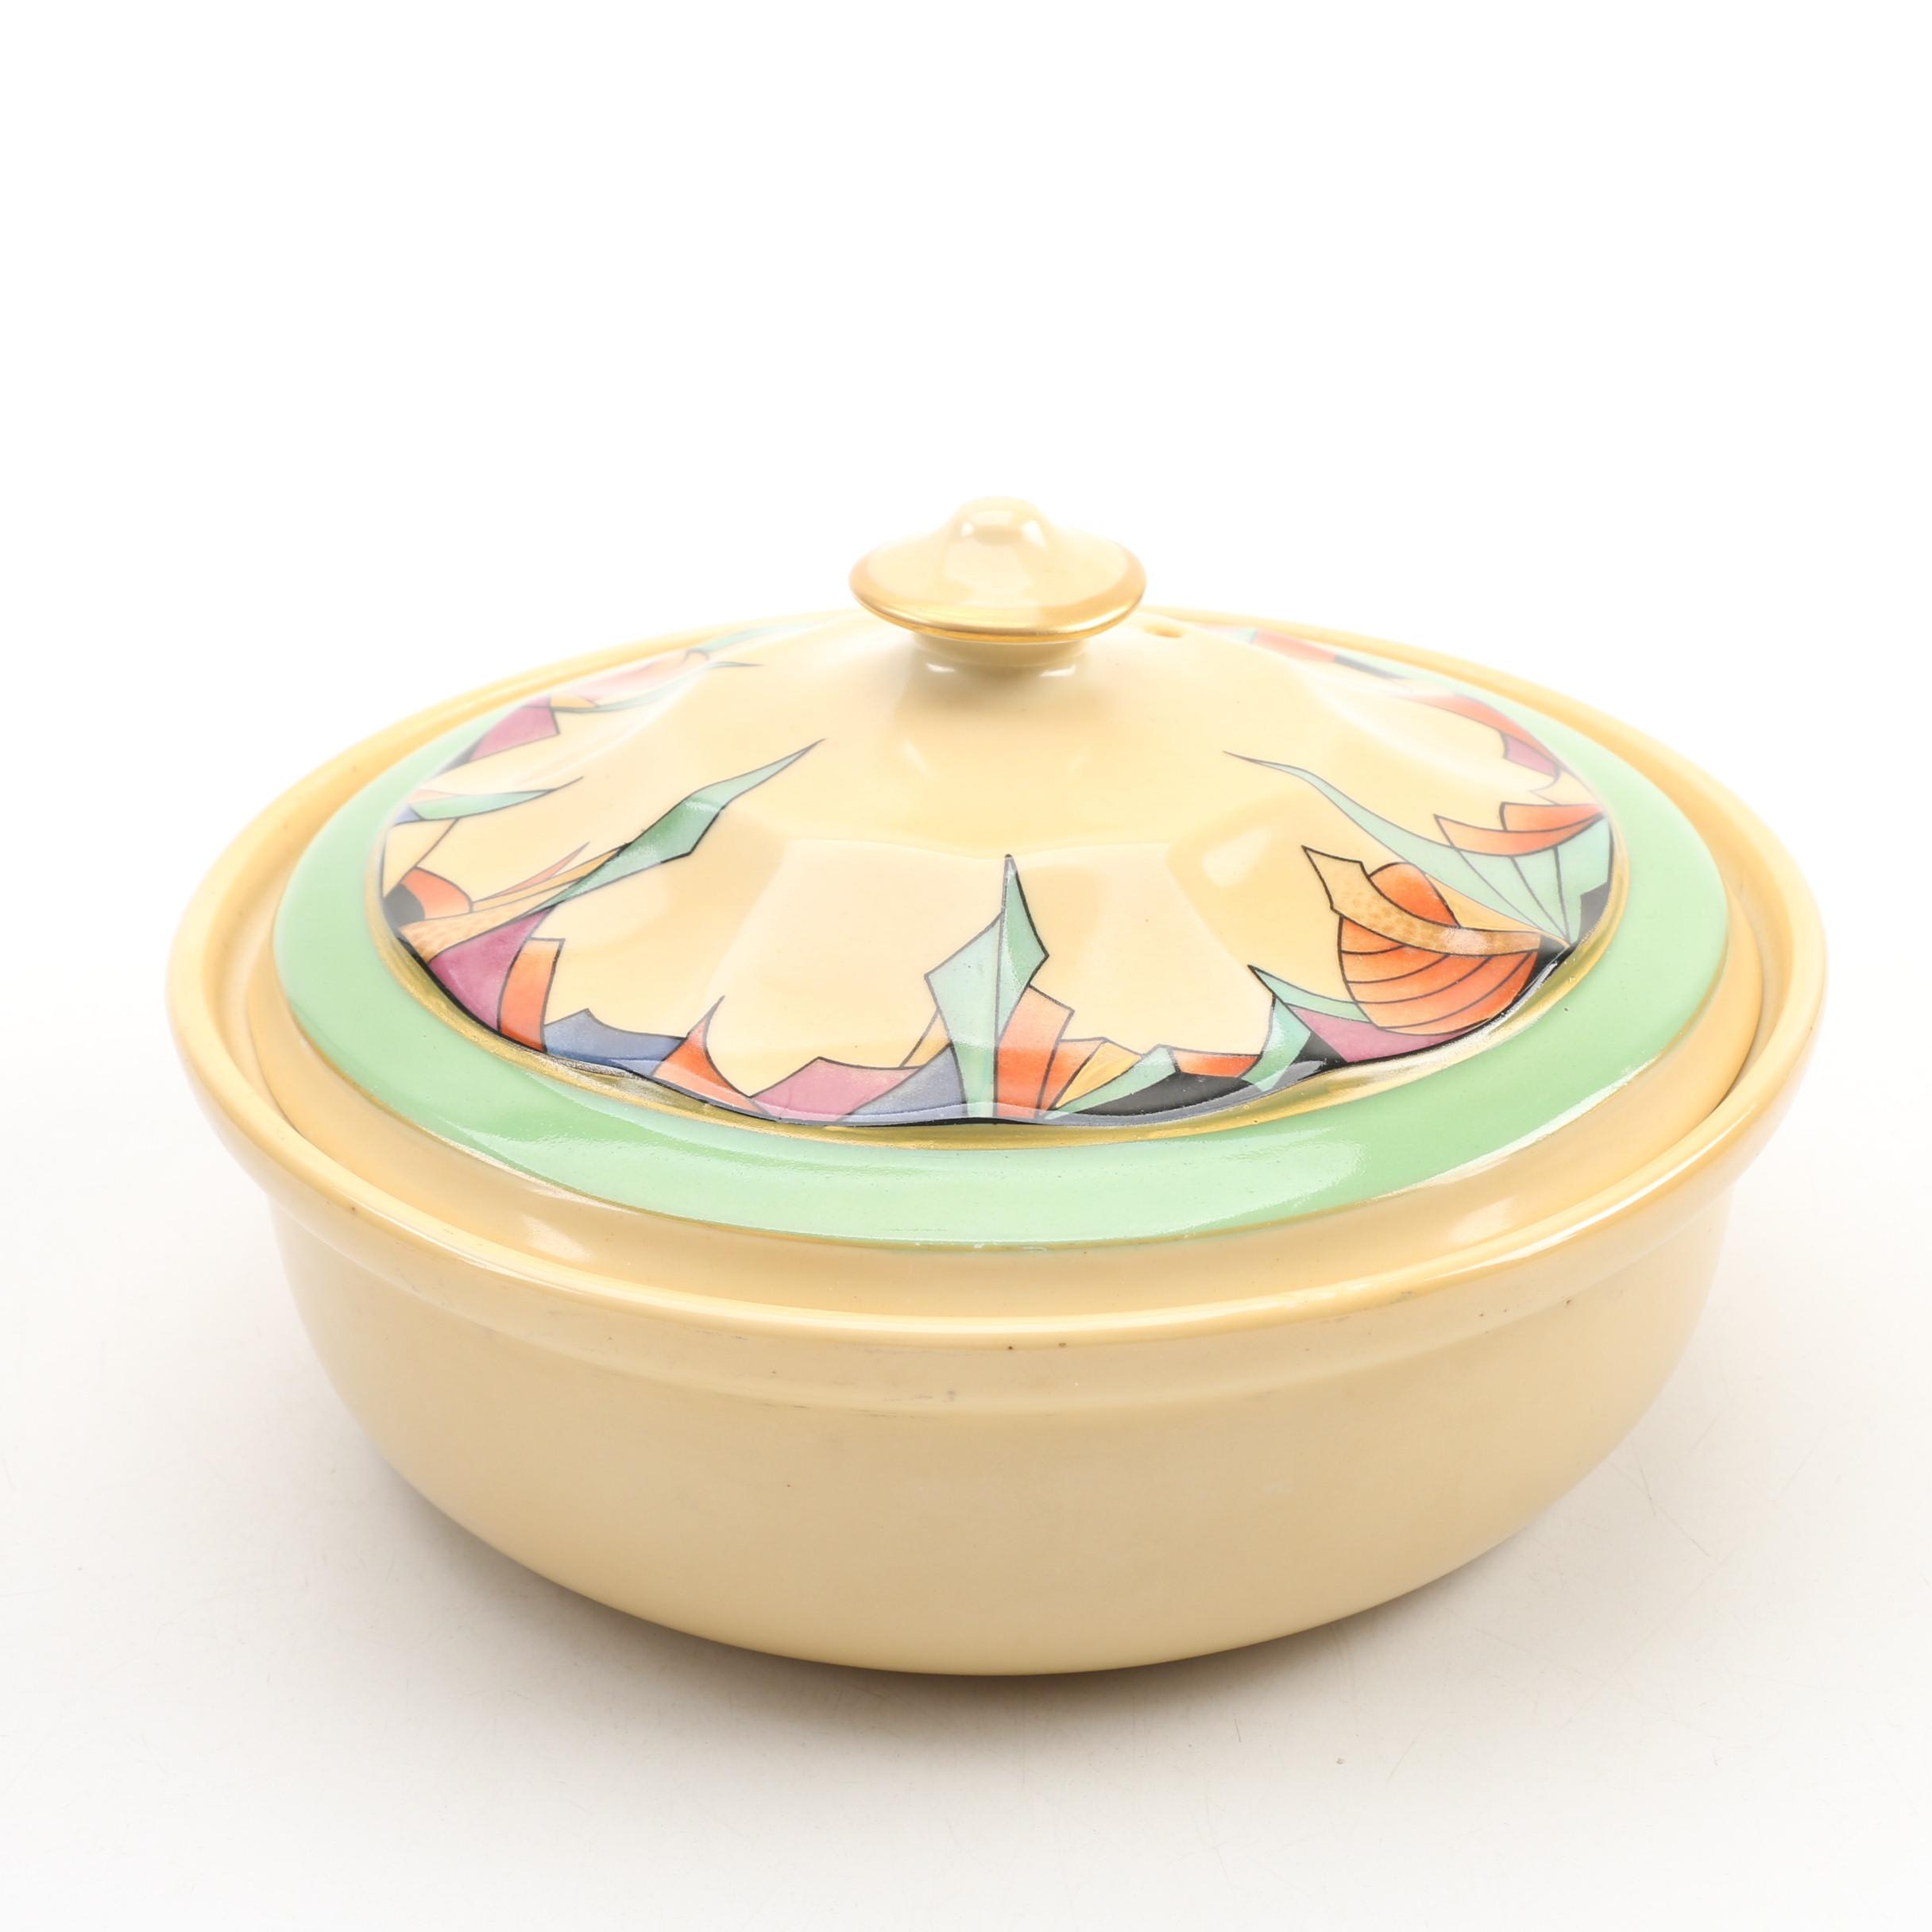 Fraunfelter Royal Rochester Covered Casserole Dish, Mid-Century